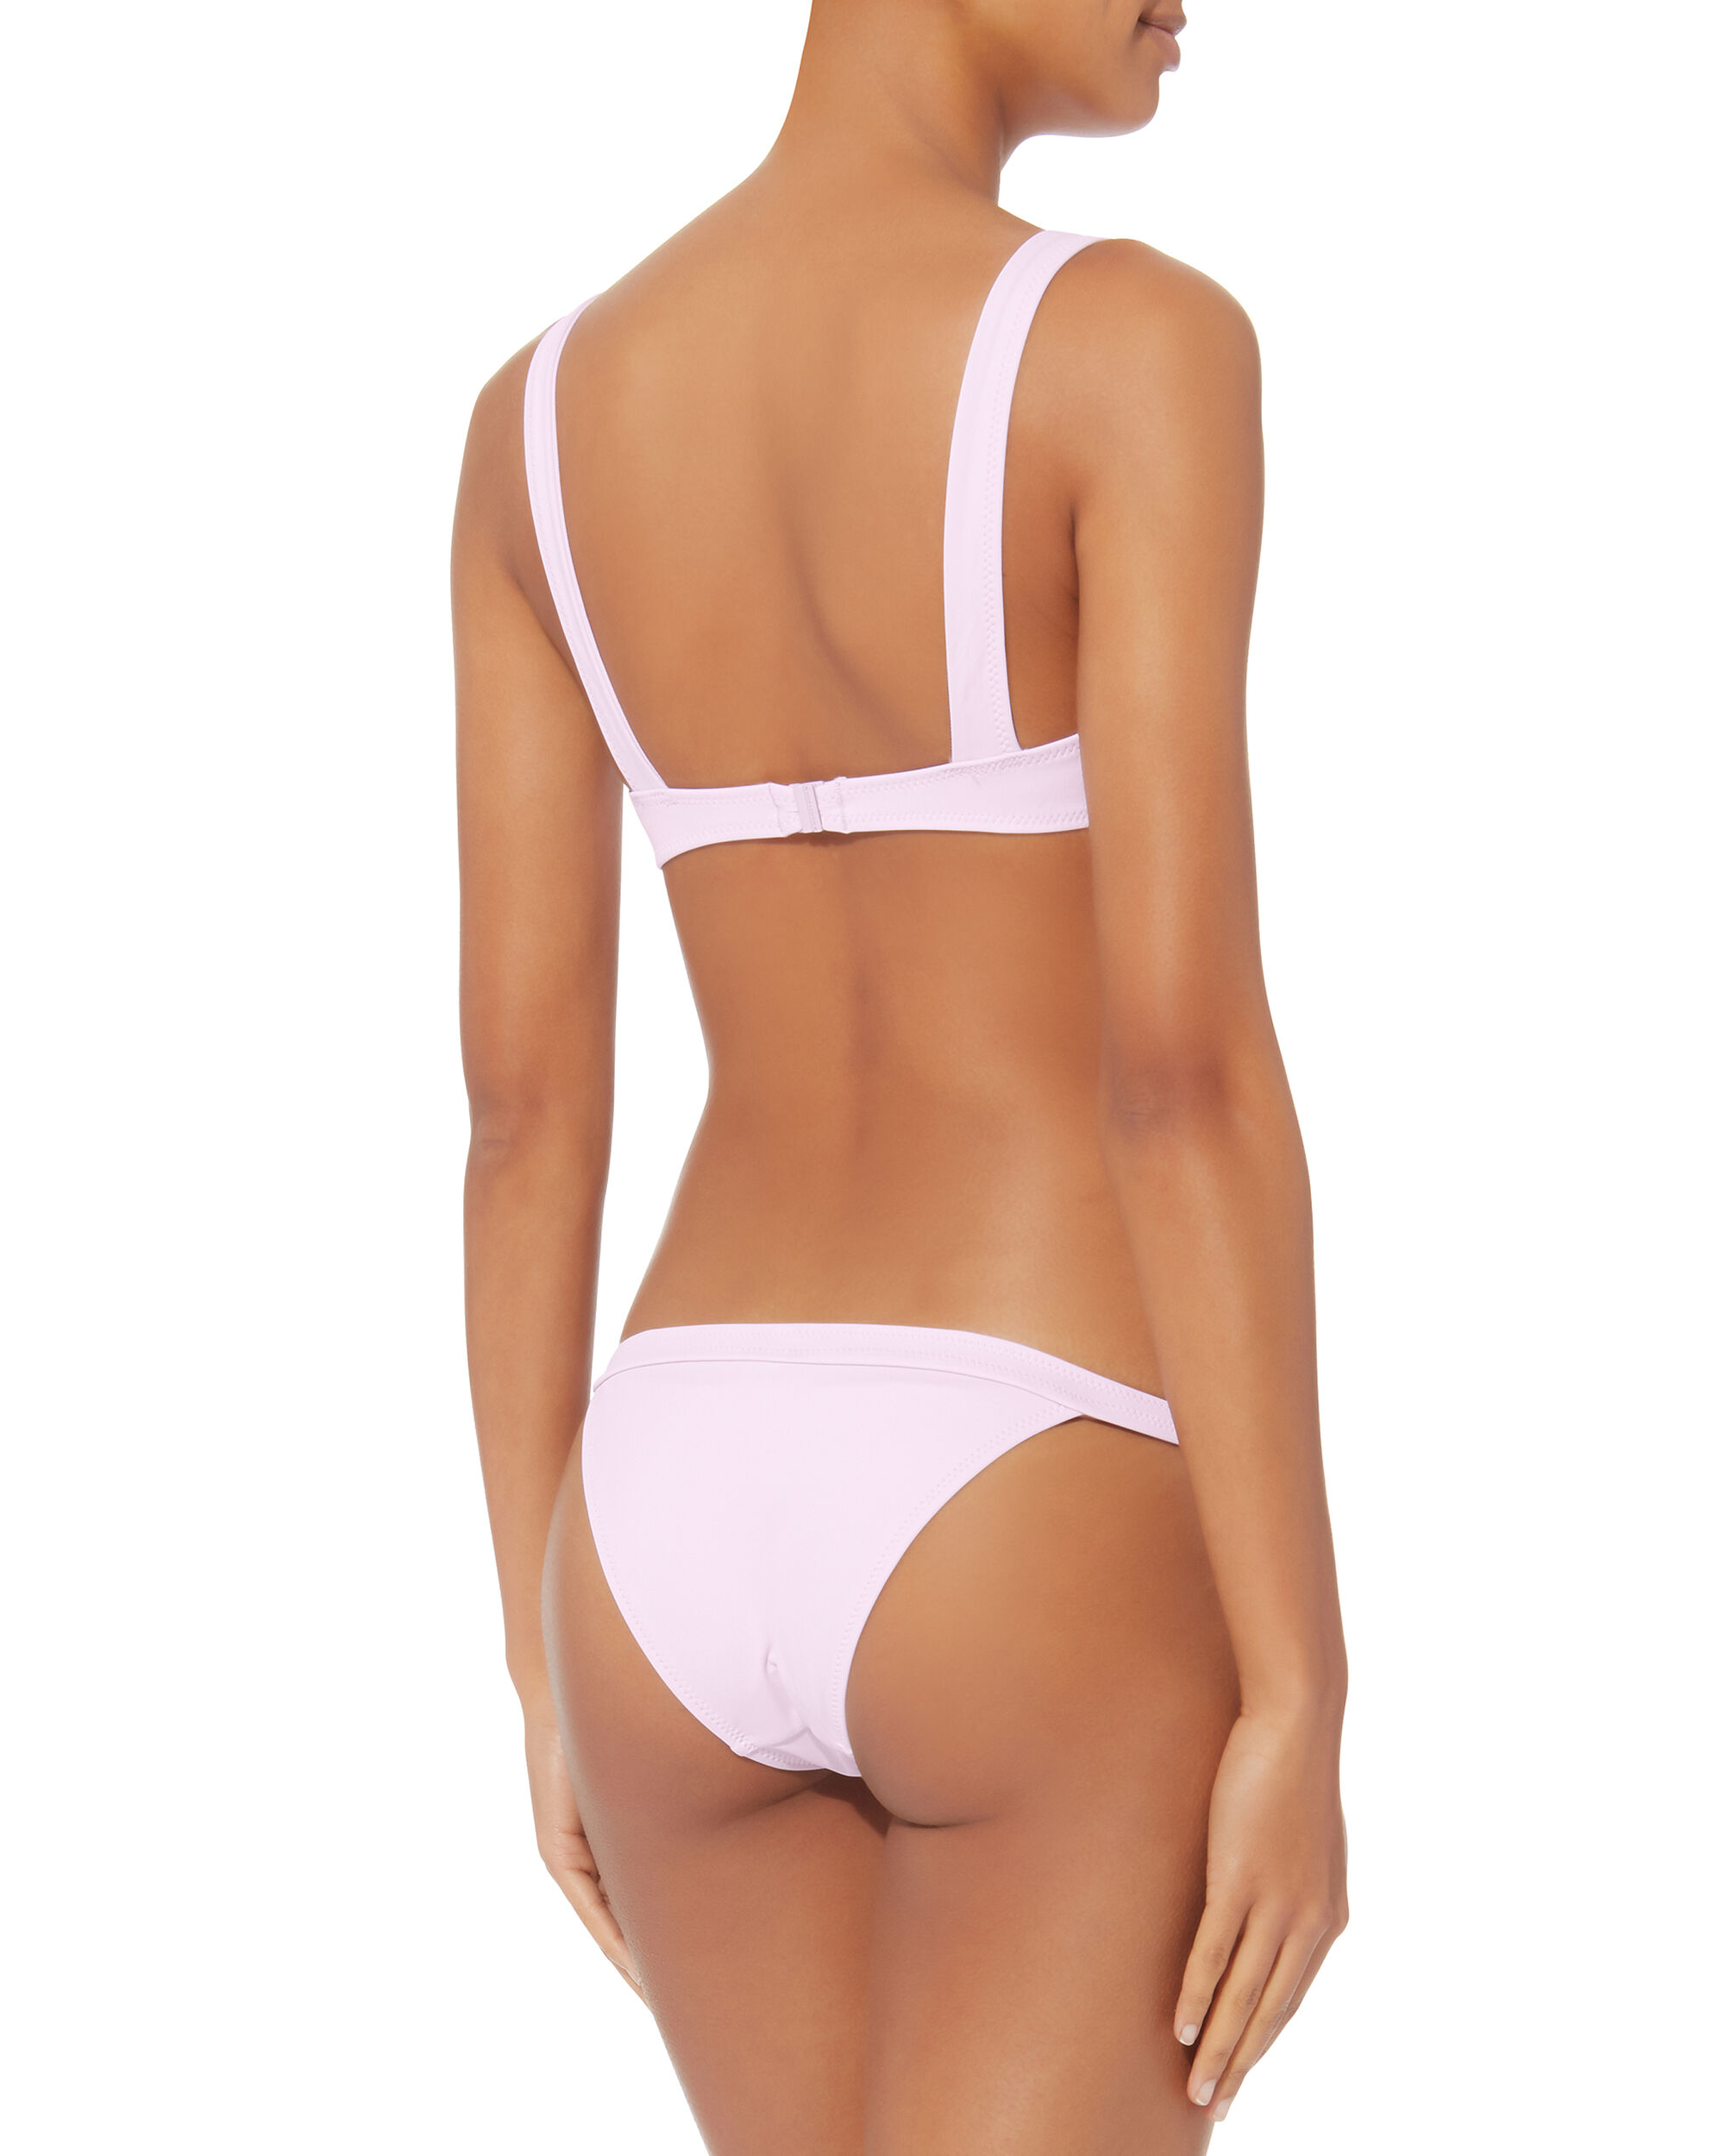 Molly Bikini Bottom, LIGHT PURPLE, hi-res